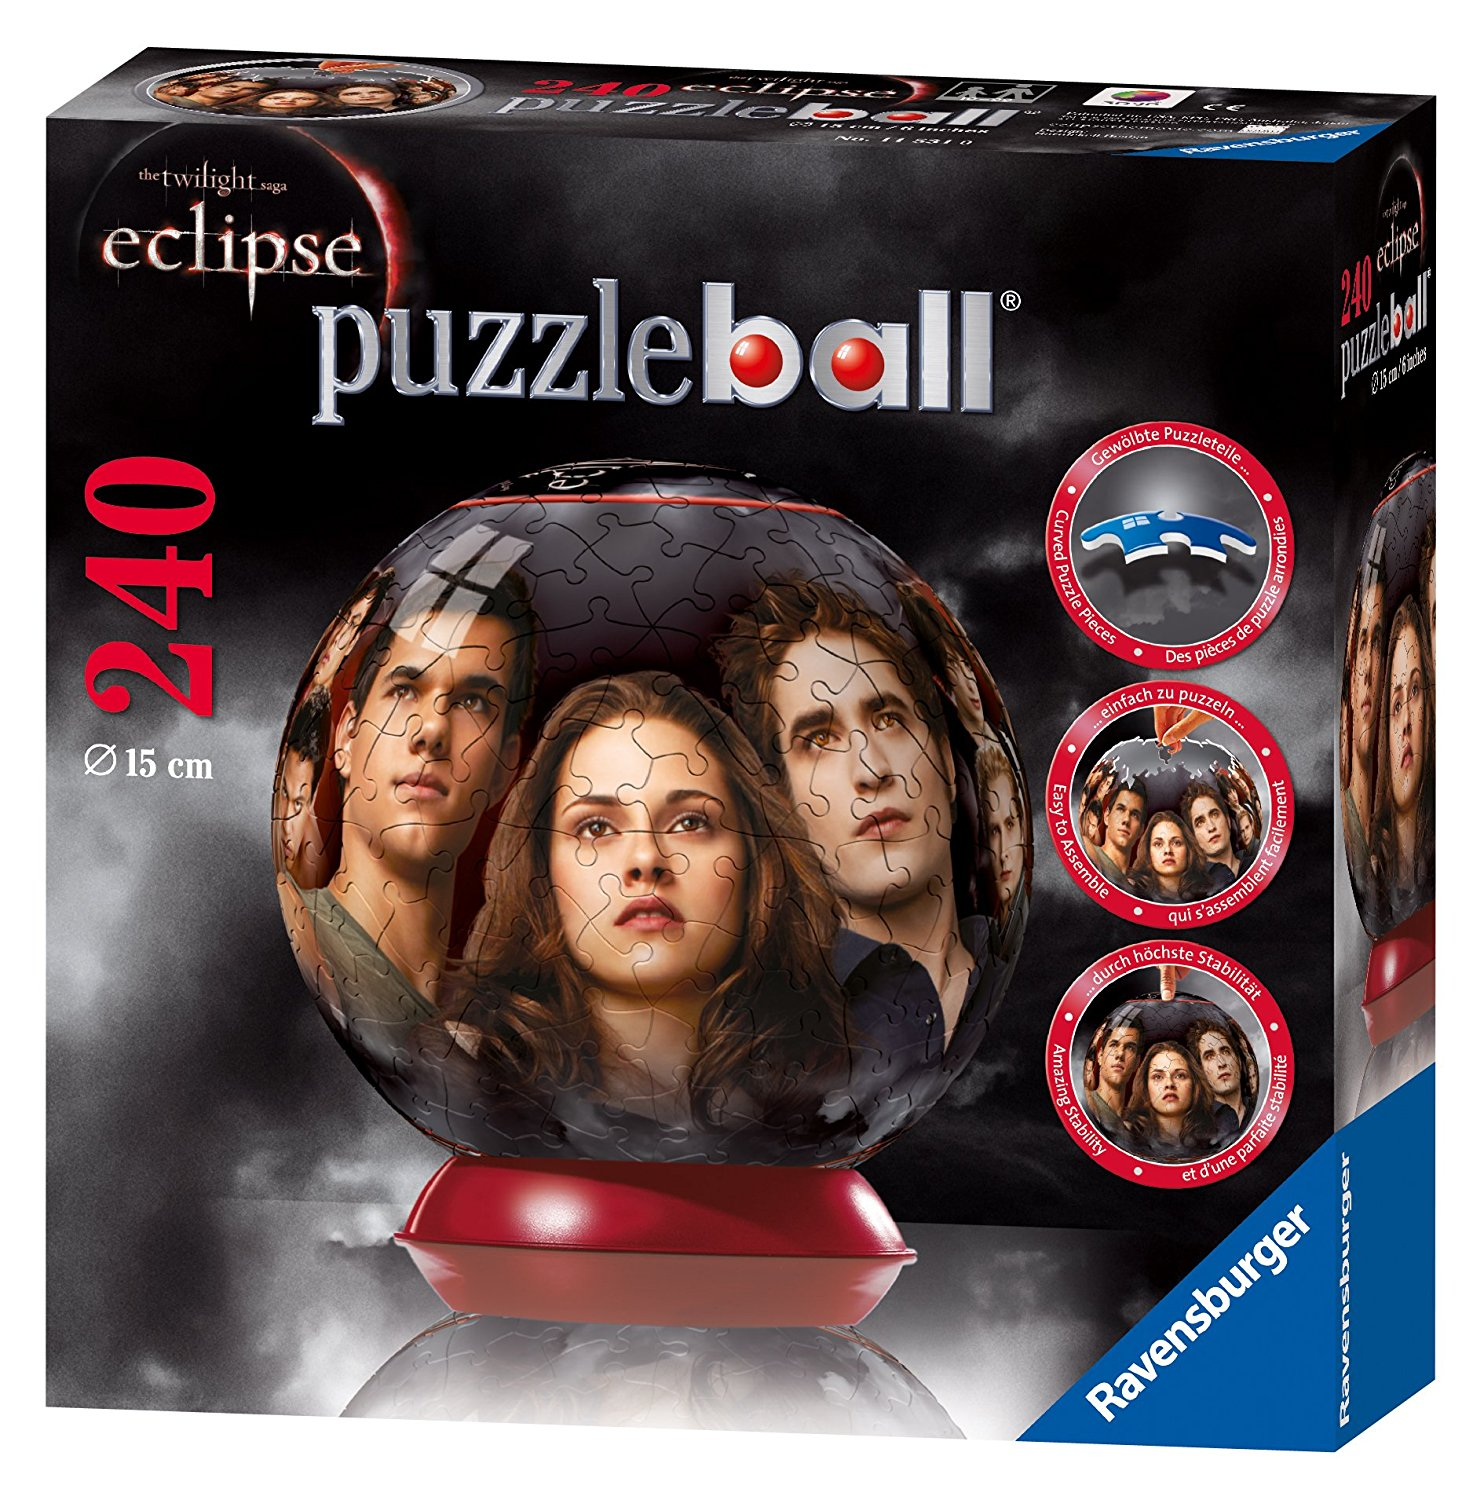 The Twilight Saga: Eclipse 240 Piece Puzzleball, Puzzleball a uniquely rounded puzzling experience By... by